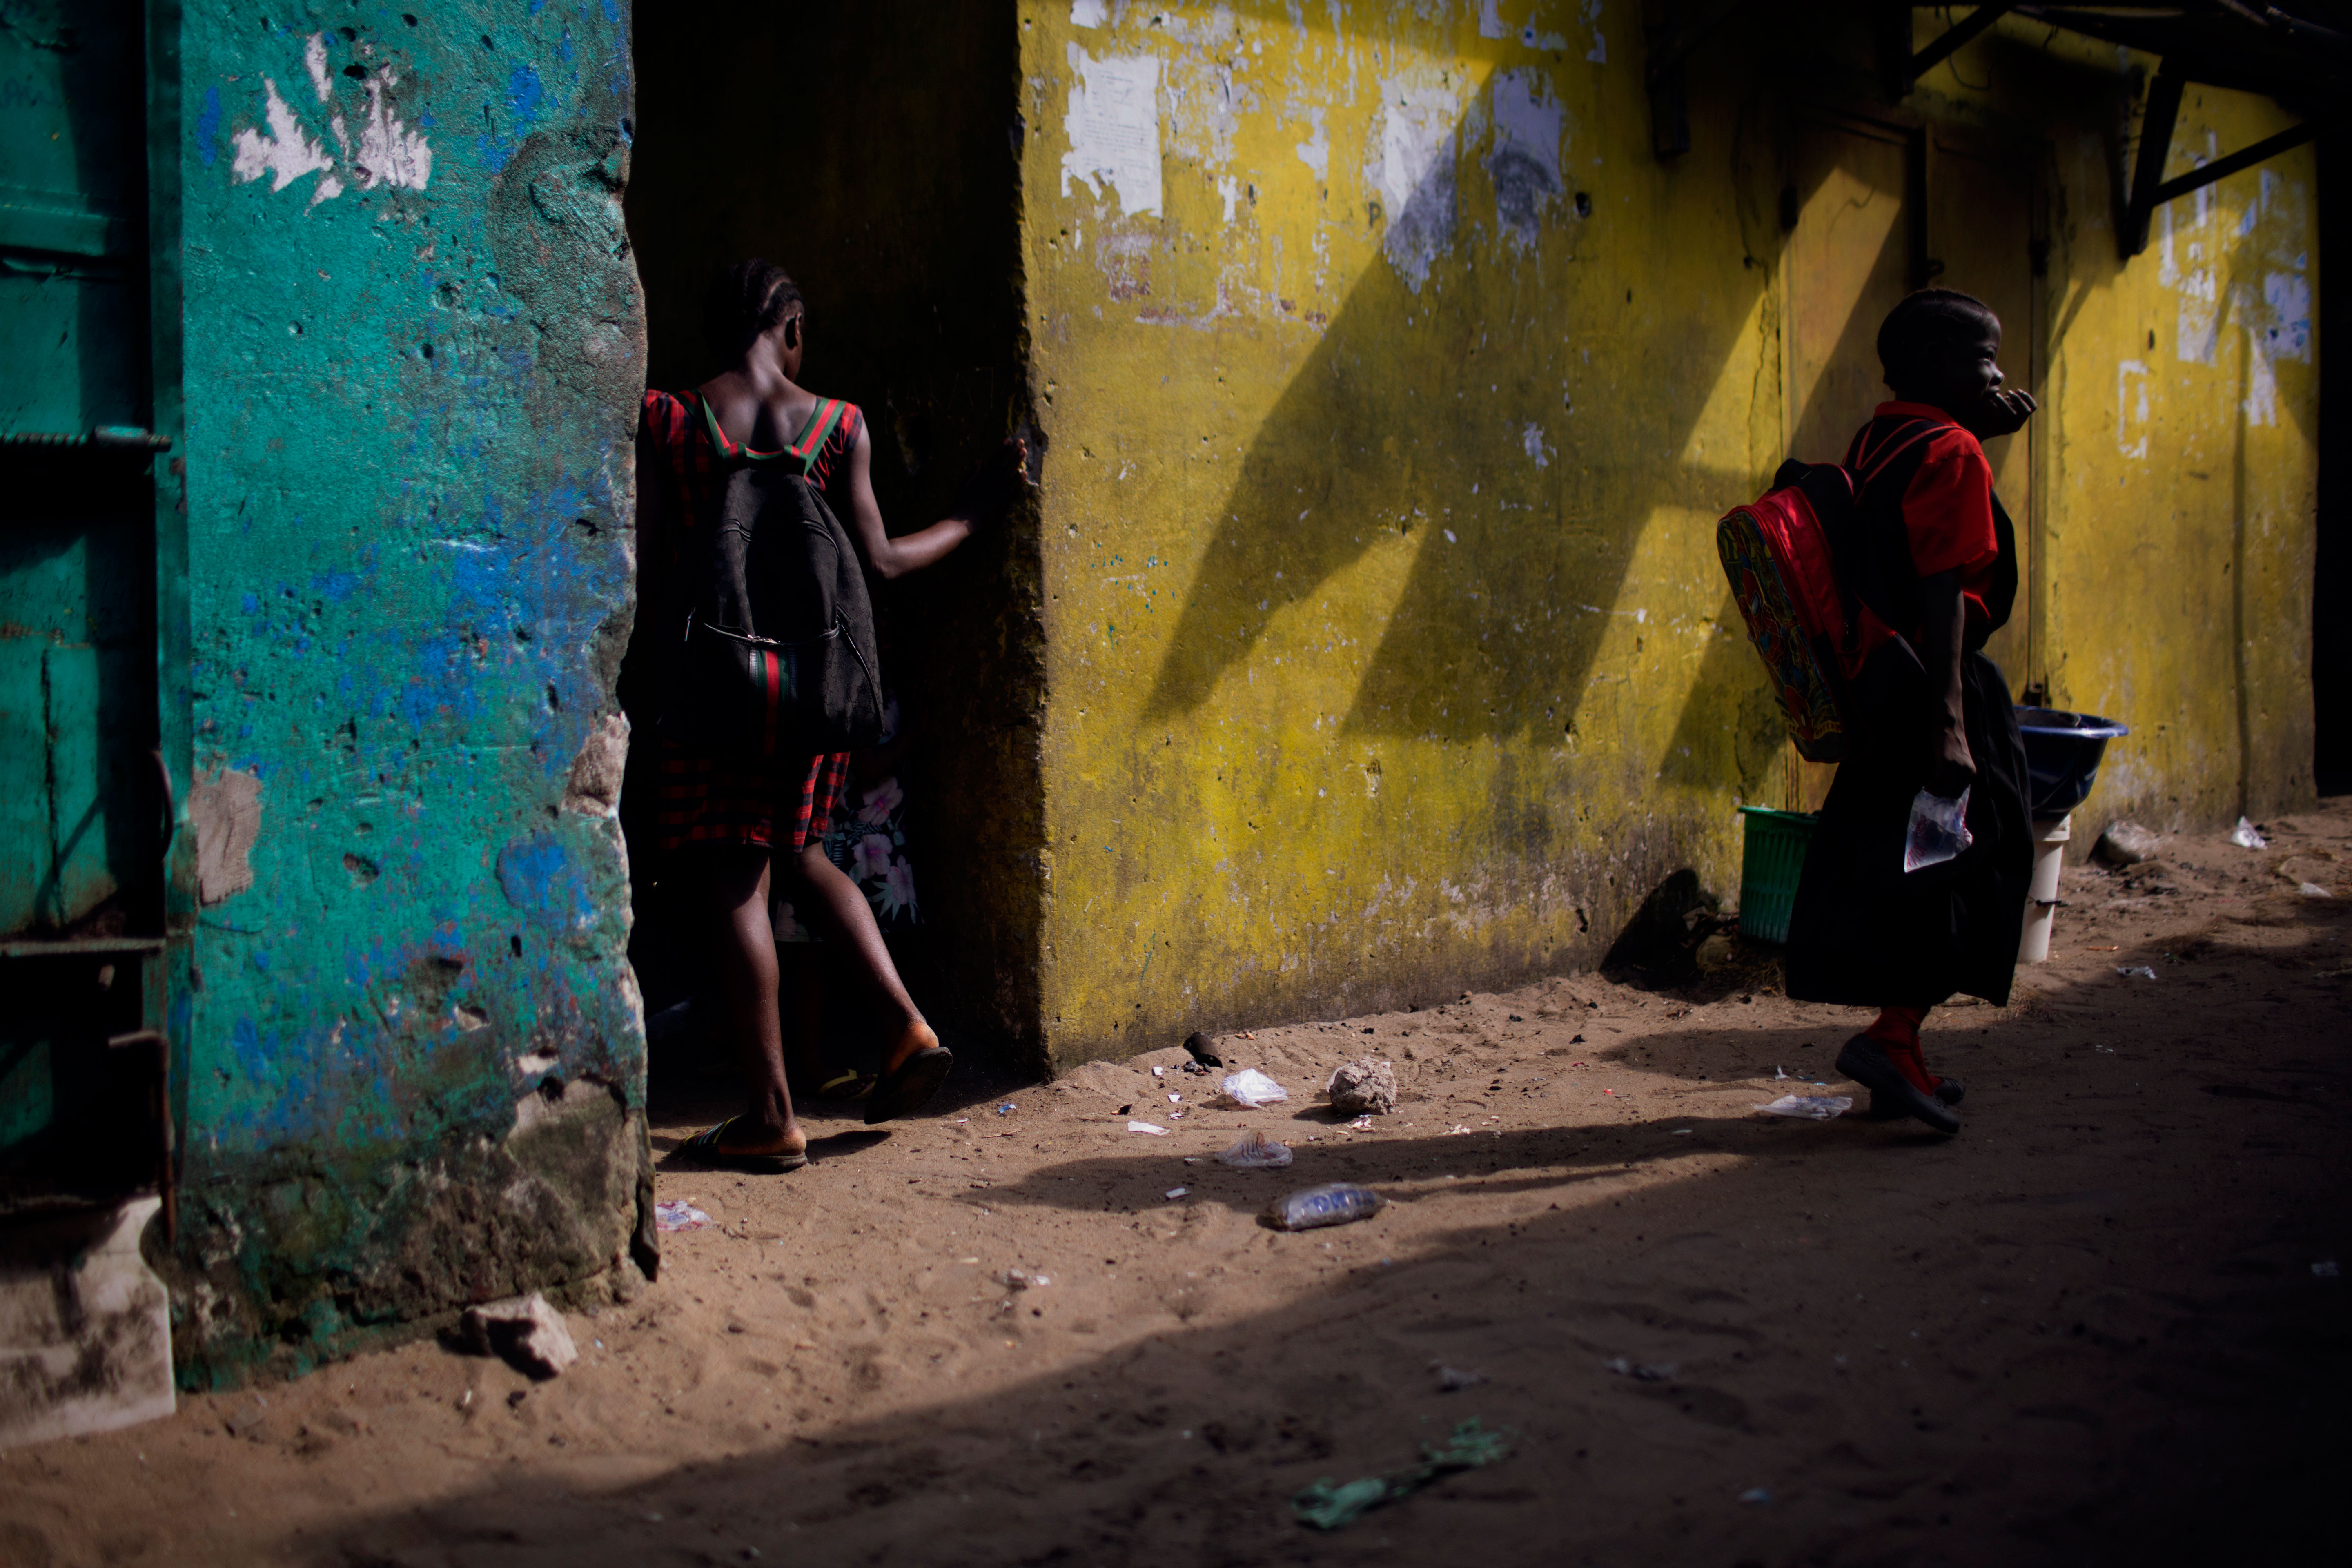 A girl wearing the More Than Me uniform walks into an alley in the West Point neighborhood of Monrovia, Liberia.